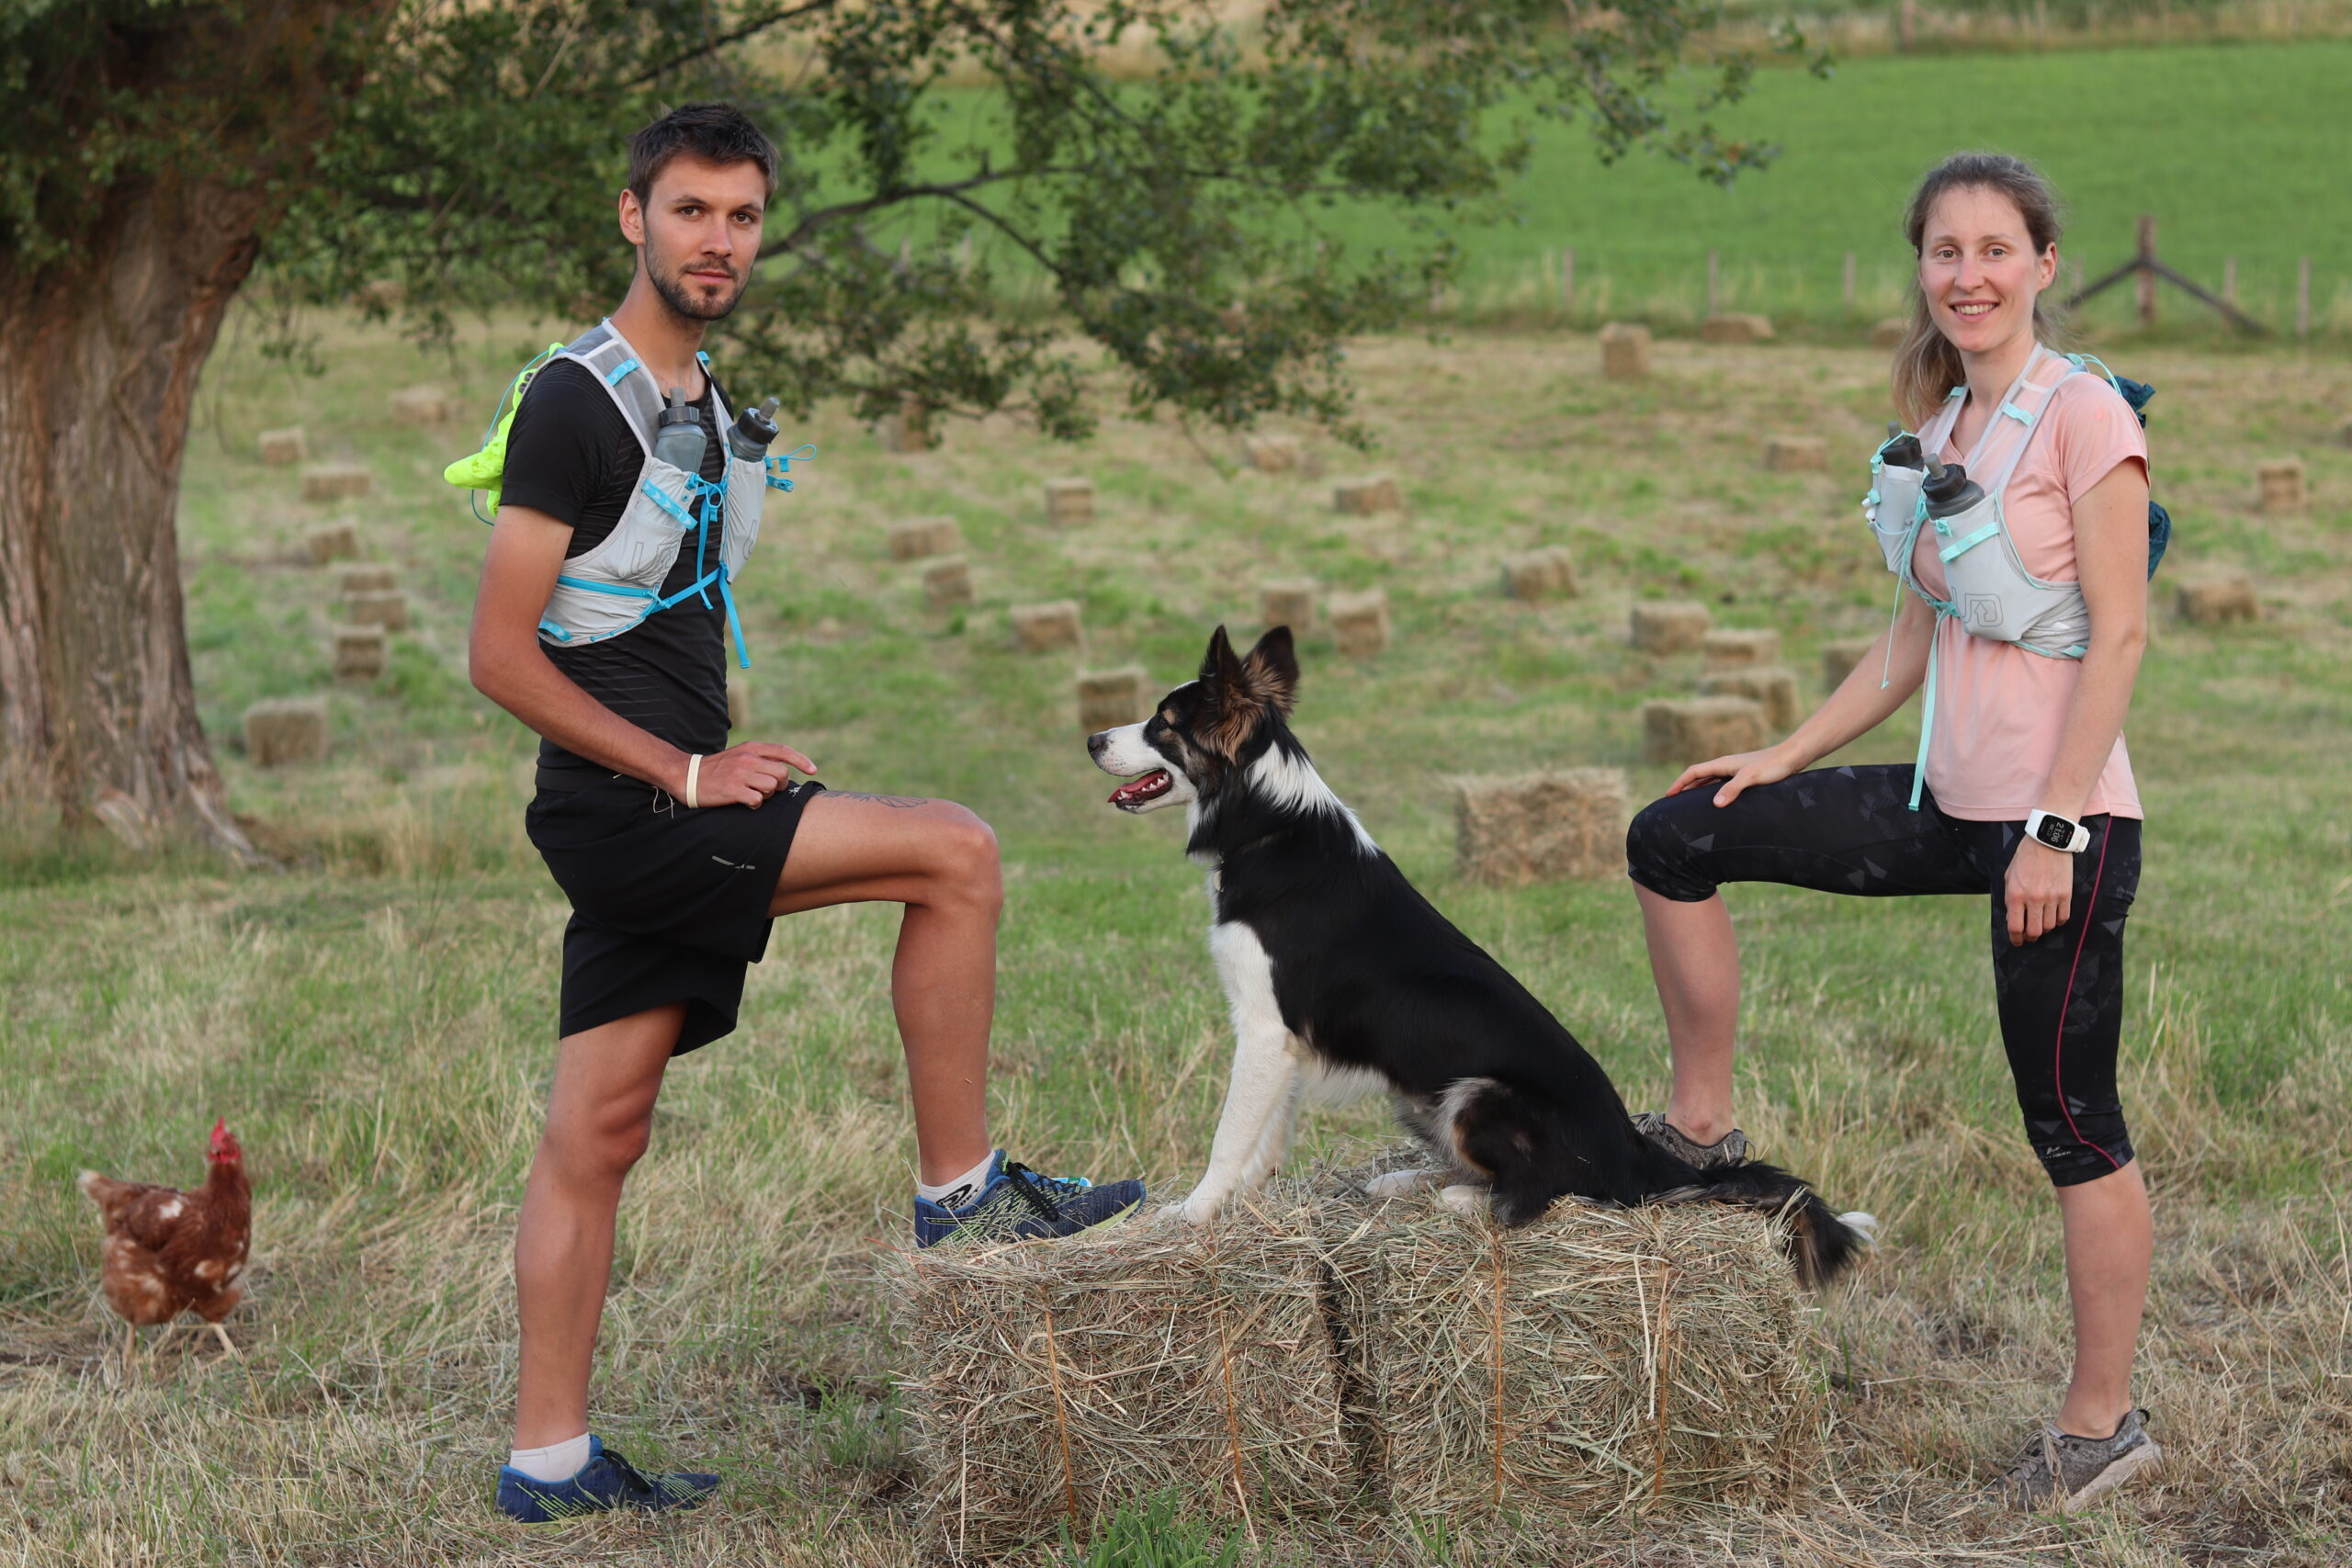 Race Vest 5.0 de Ultimate Direction : un test en Famille !